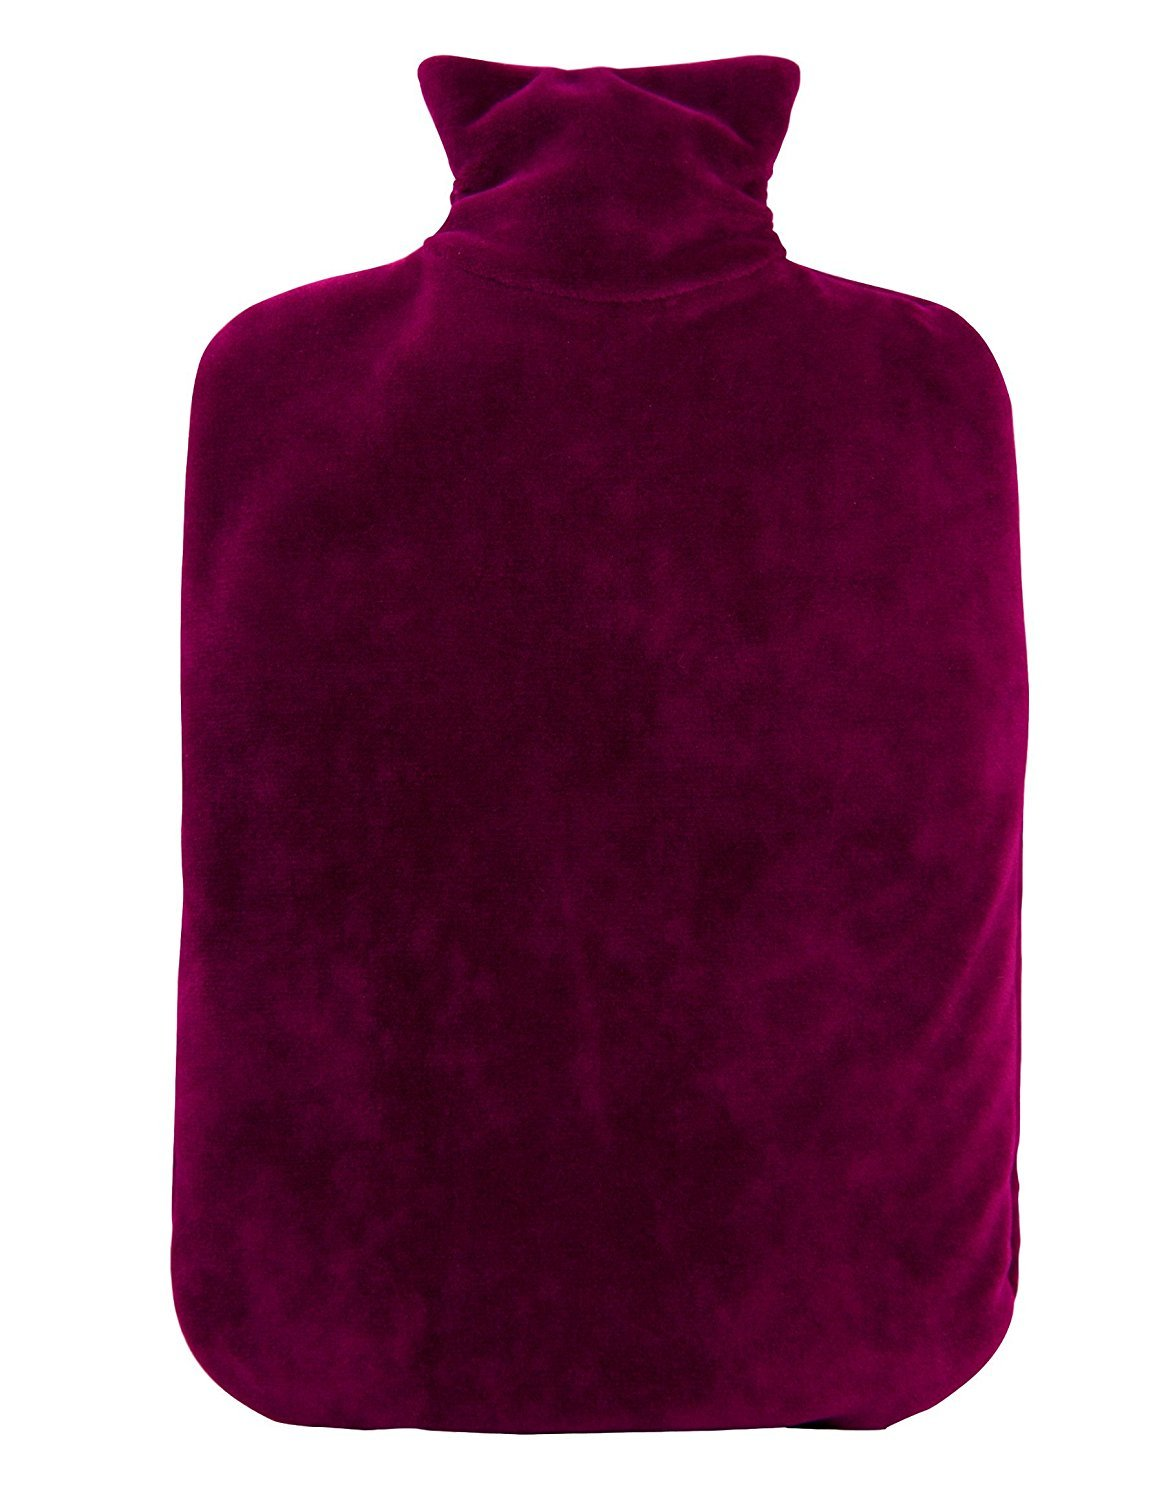 Hugo Frosch 2L Classic Hot Water Bottle with cover